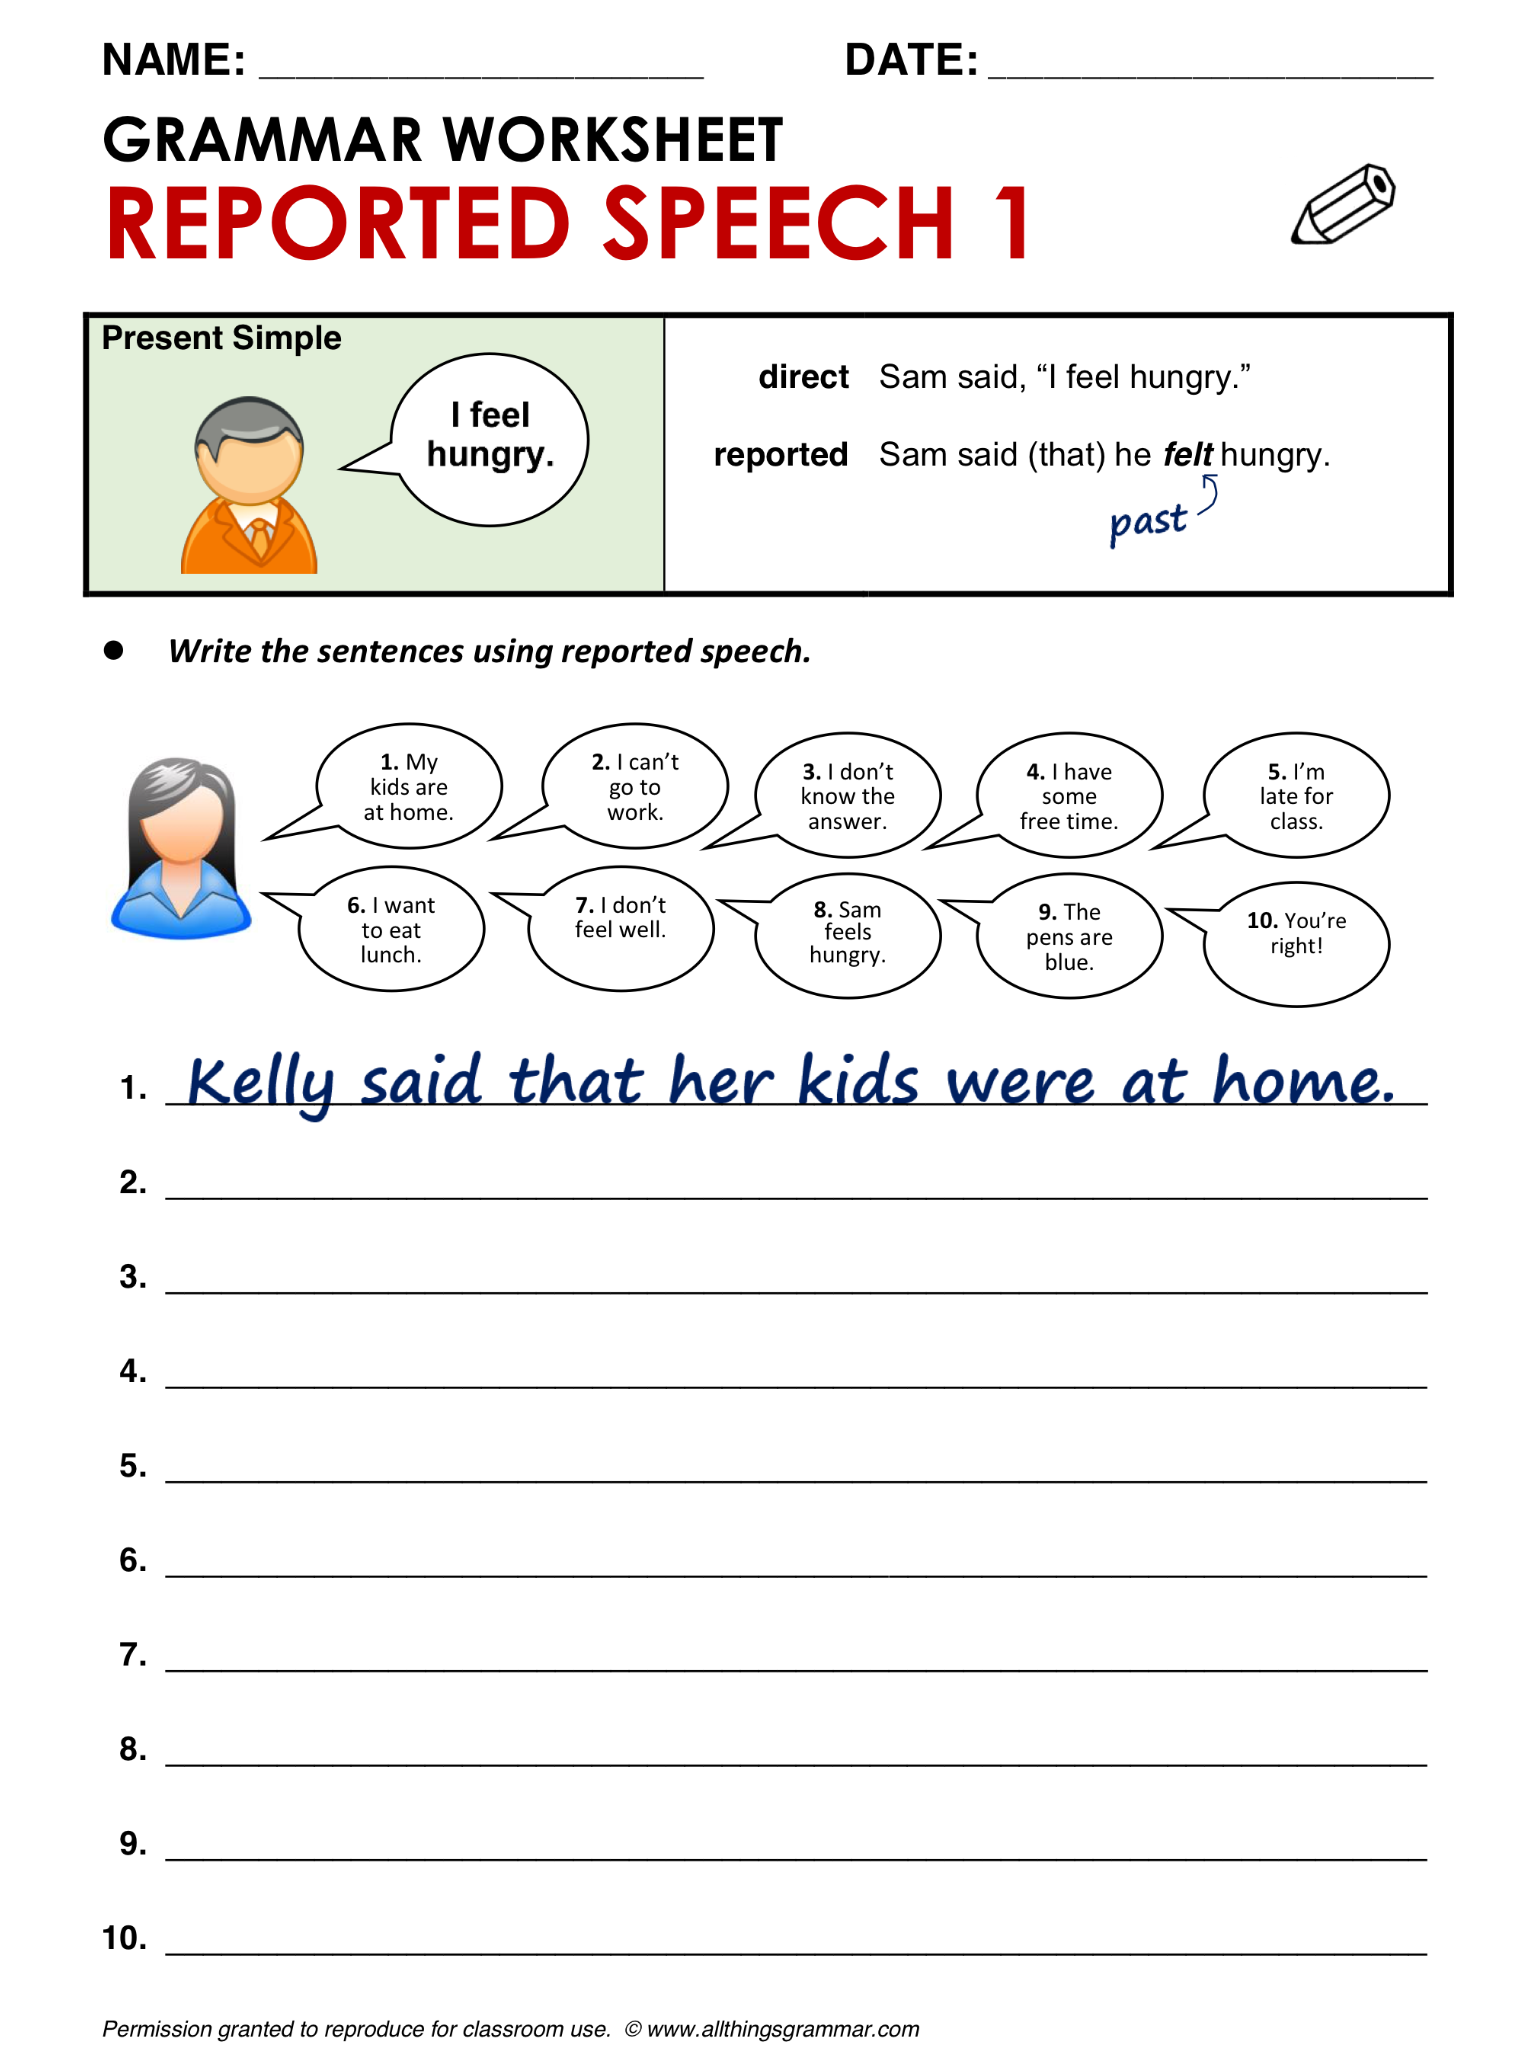 English Grammar Reported Speech 1 (from Present Simple